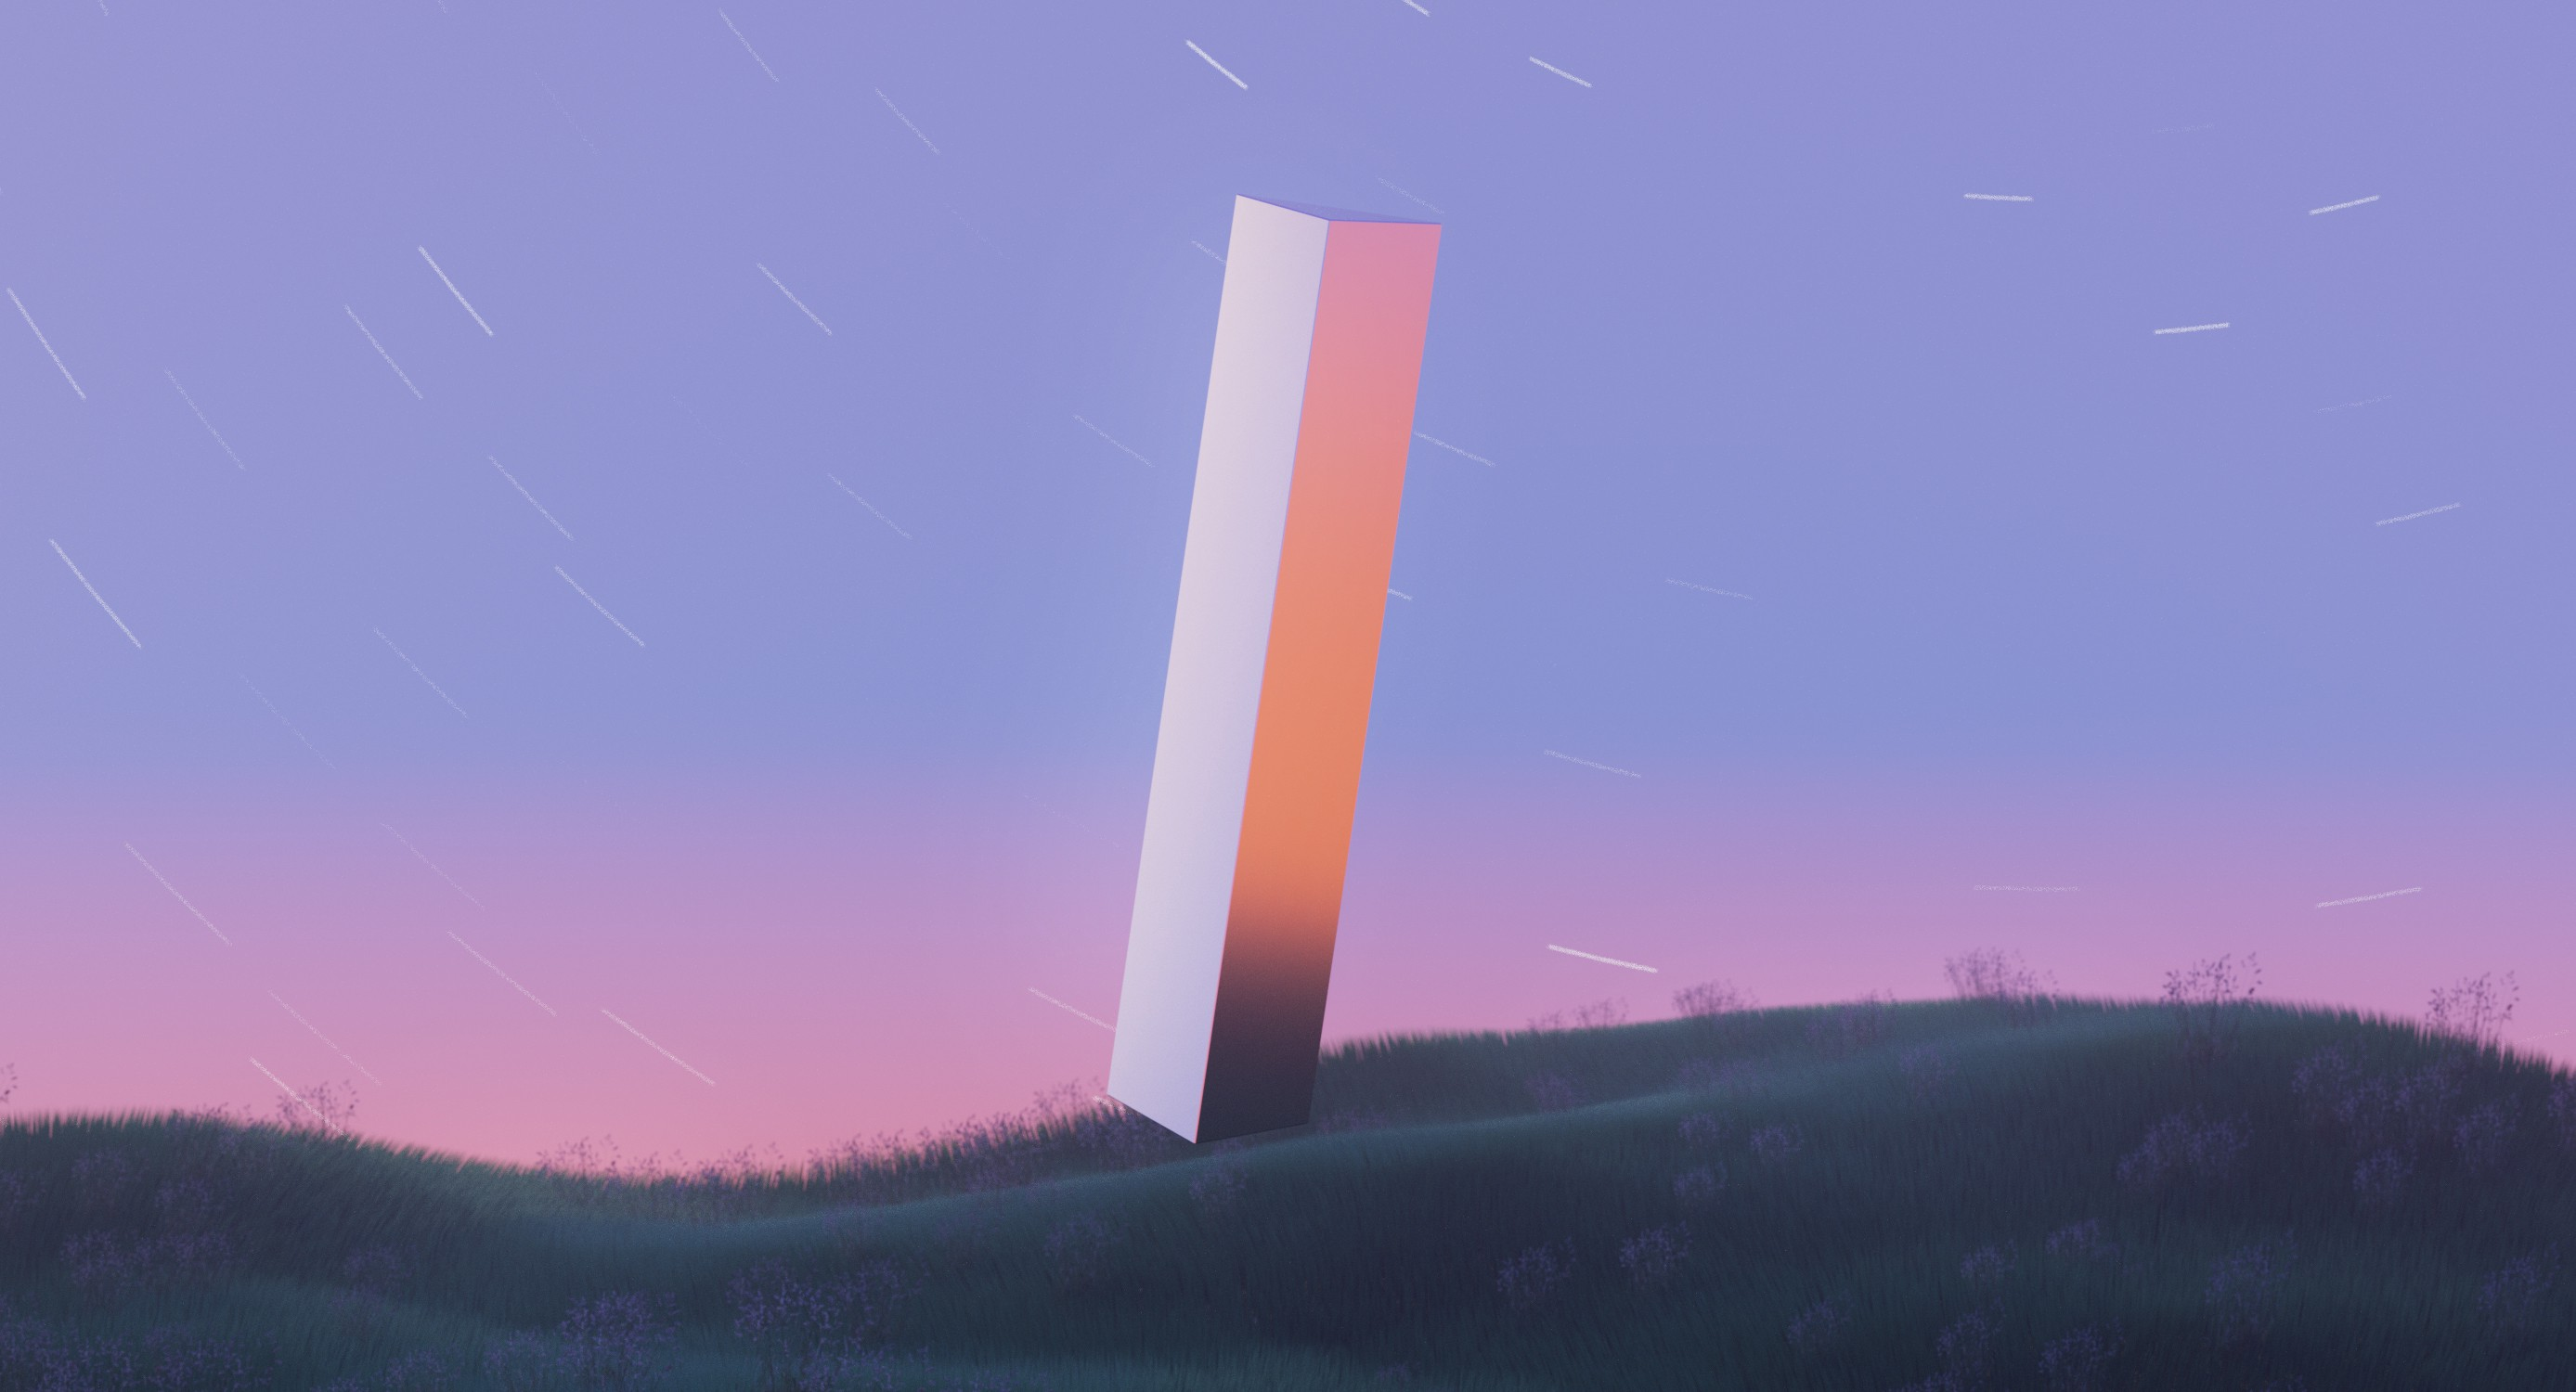 A 3d rendering of a monolith floating above a grassy field.